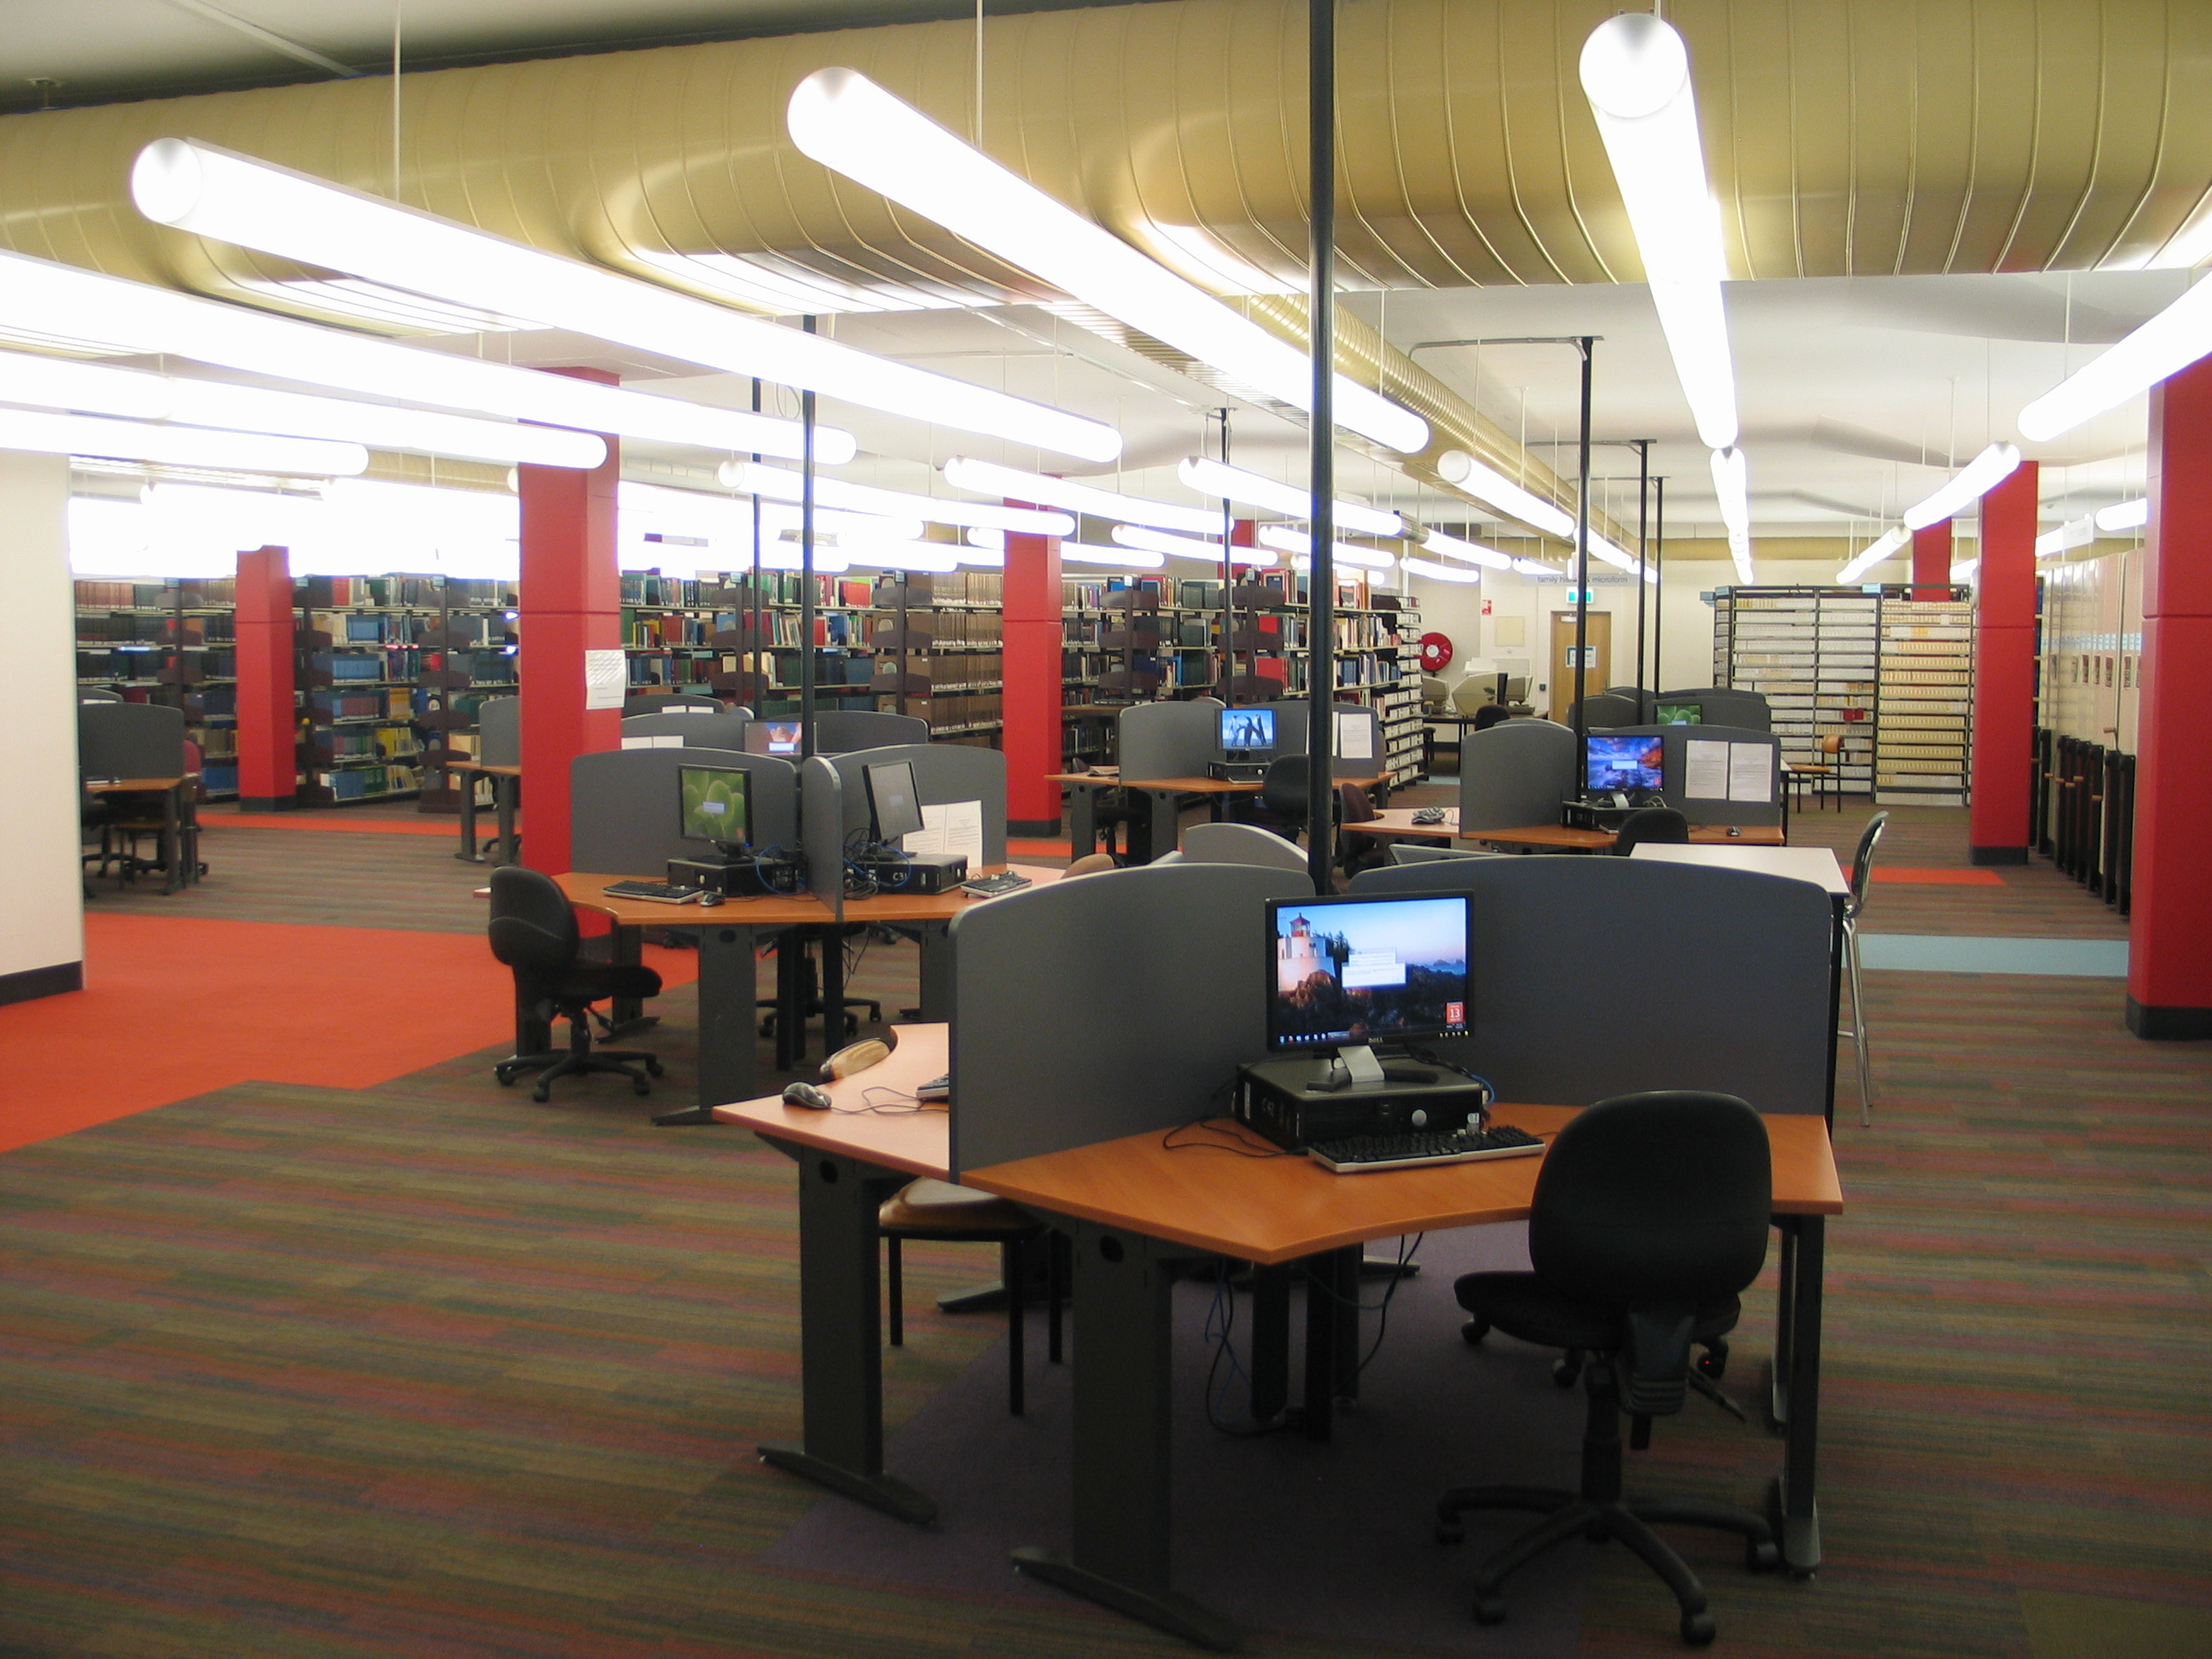 Dixson Library Learning Commons image